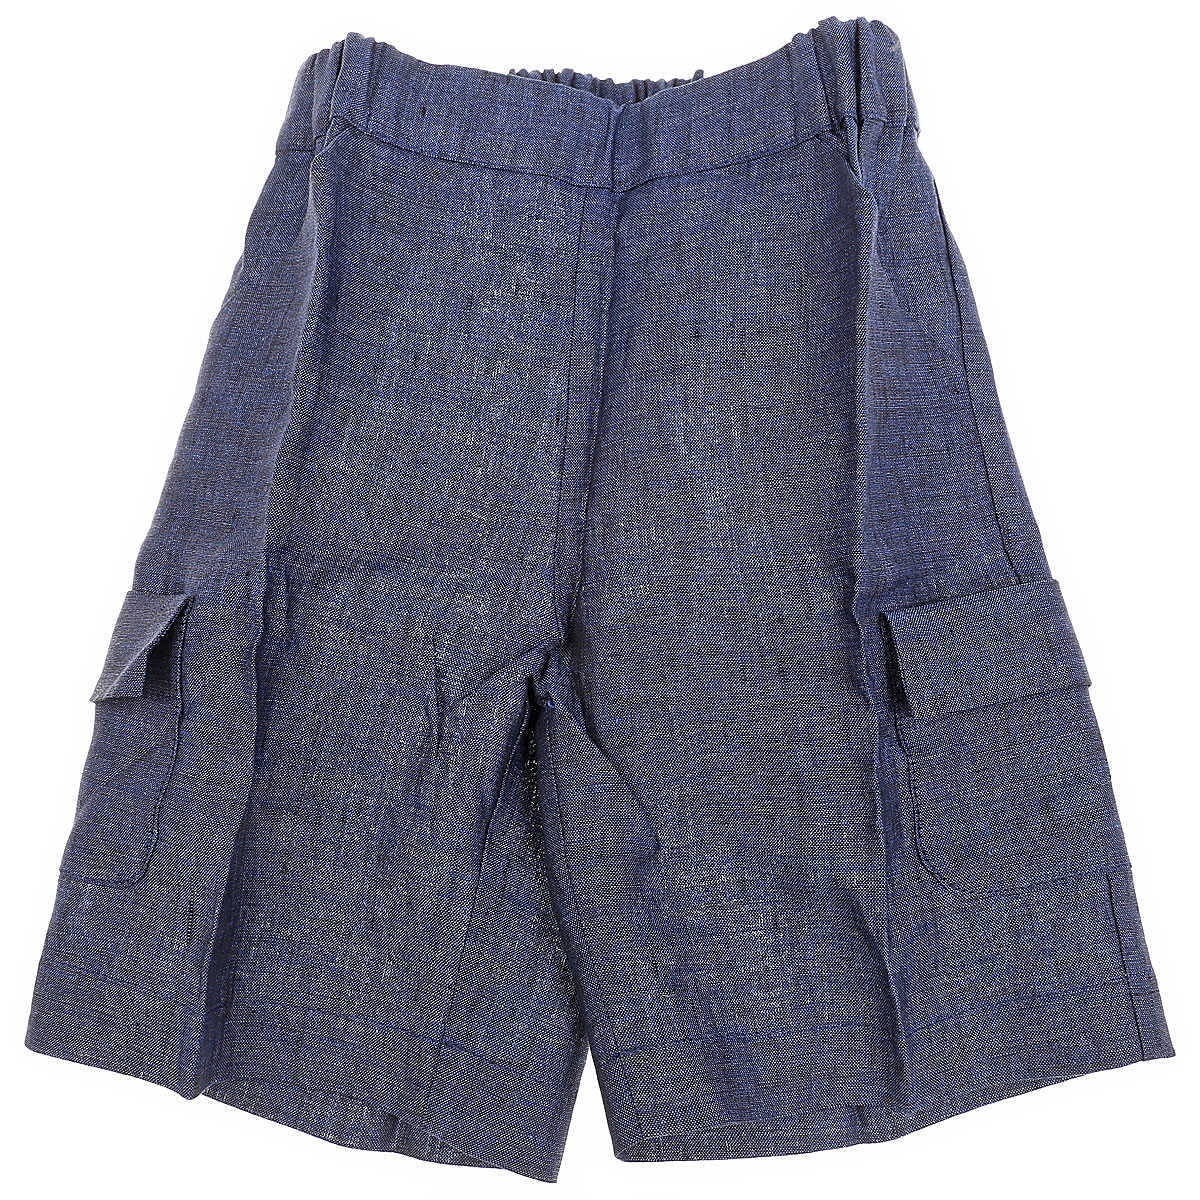 La Stupenderia Baby Shorts for Boys On Sale in Outlet Blue - GOOFASH - Mens SHORTS